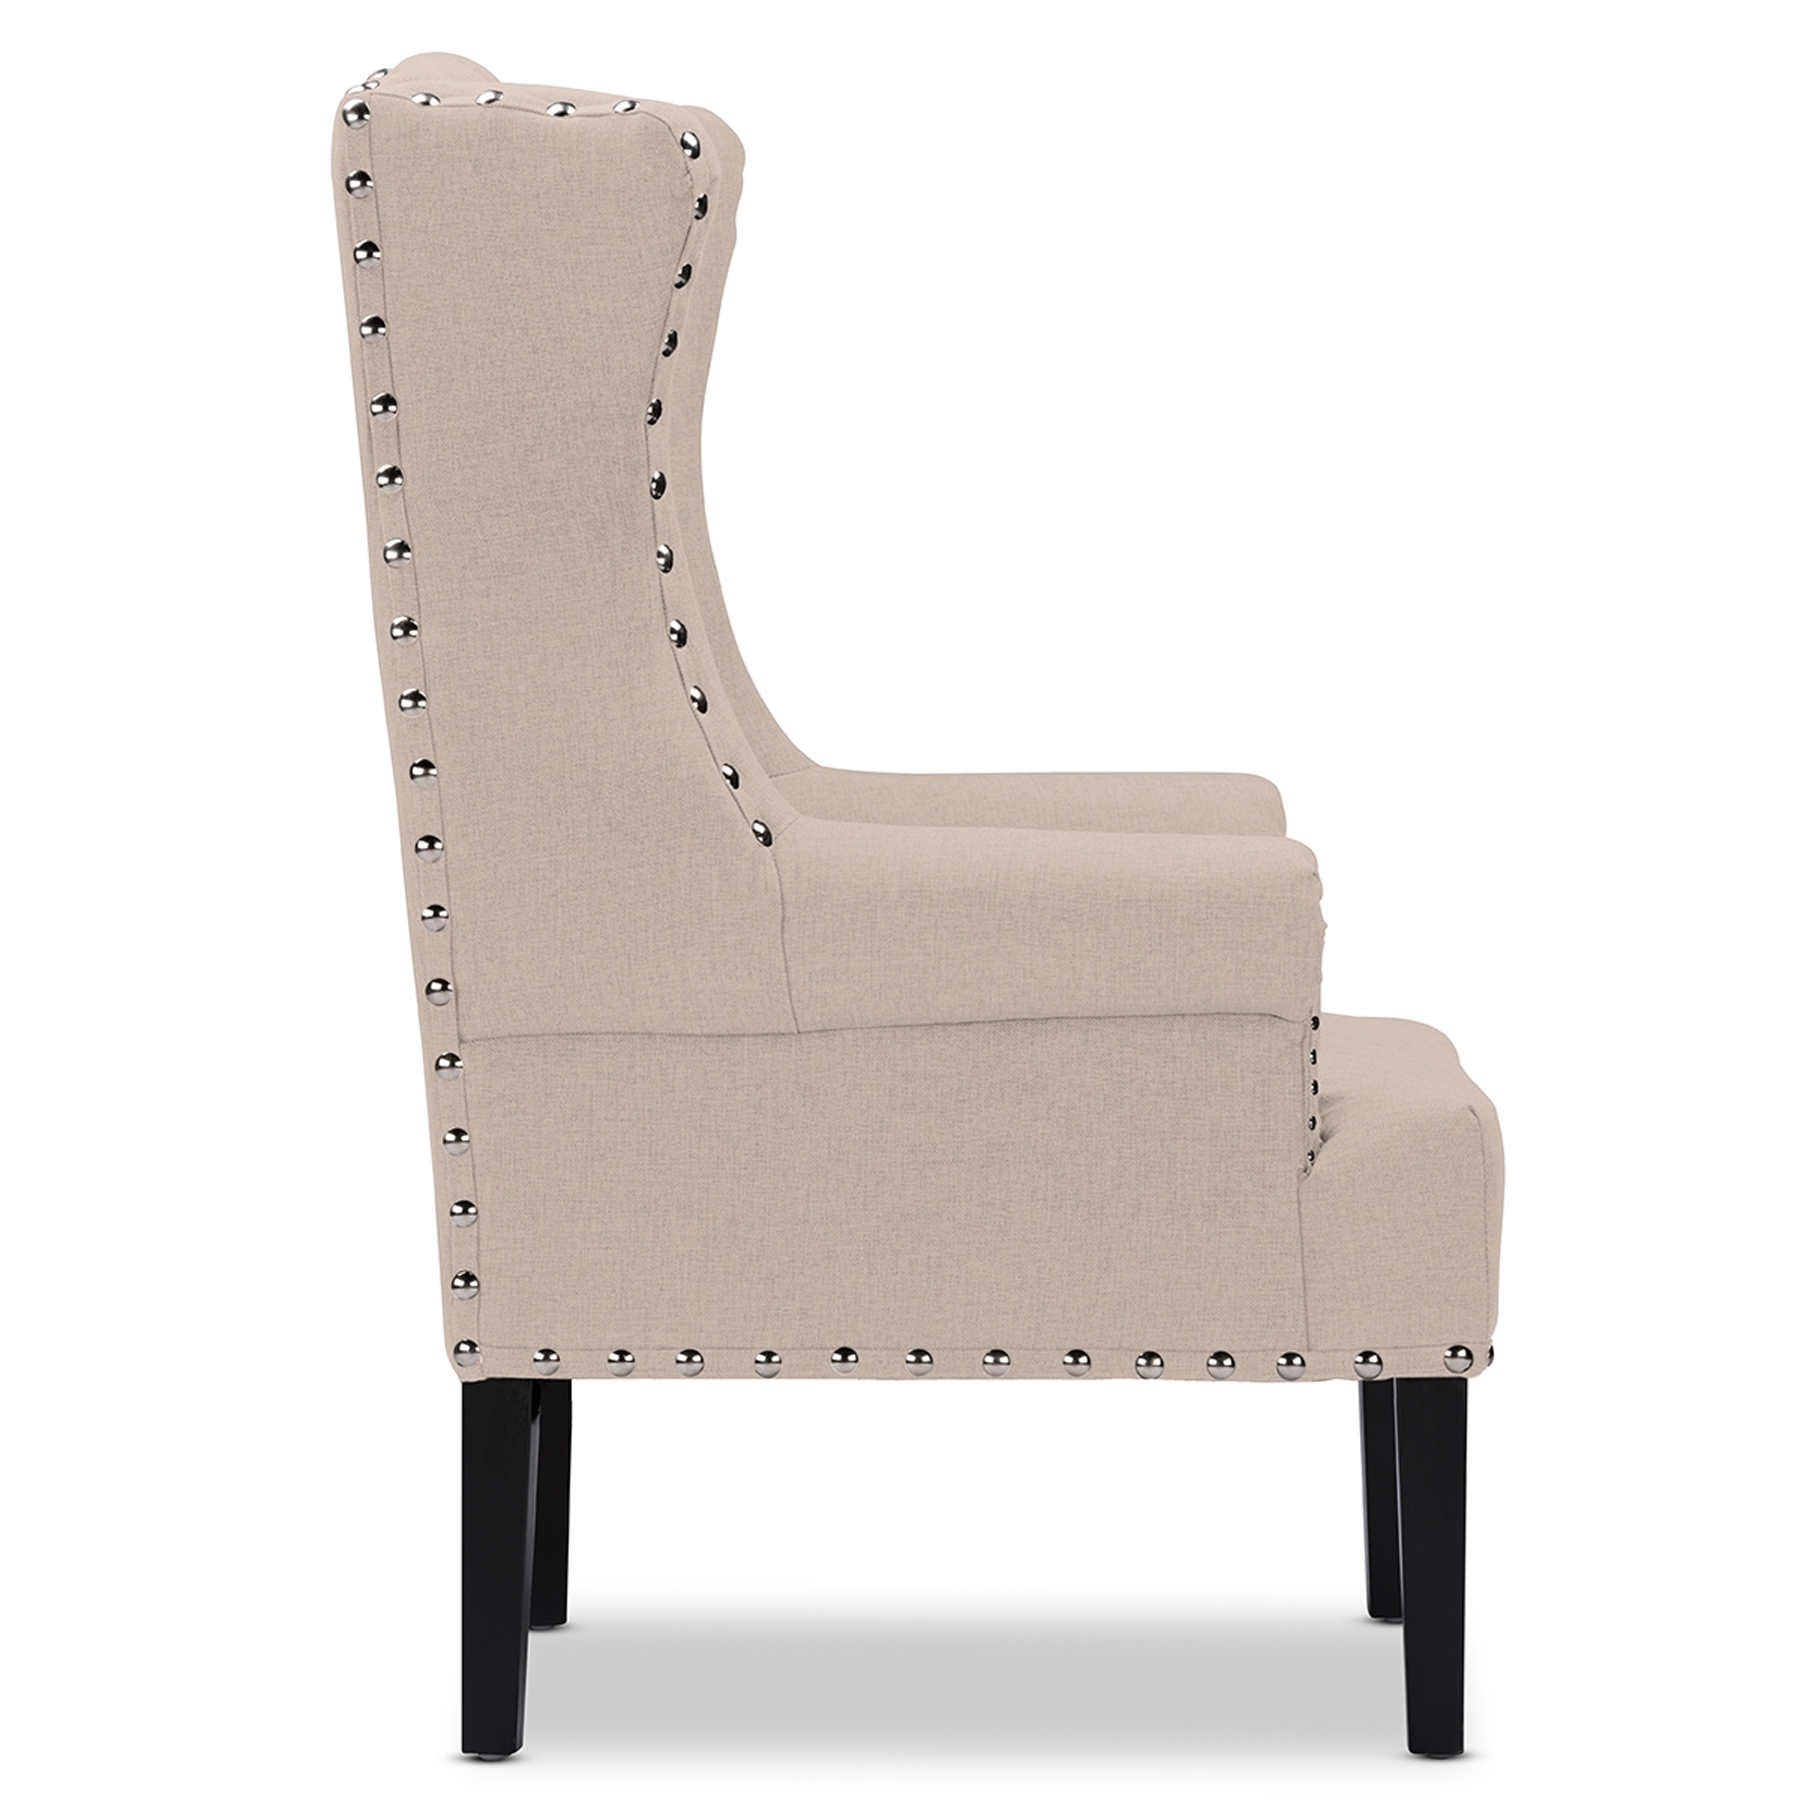 country style wingback chairs quill office wholesale accent furniture baxton studio knuckey french beige linen nail head wing back armchair tsf 8132